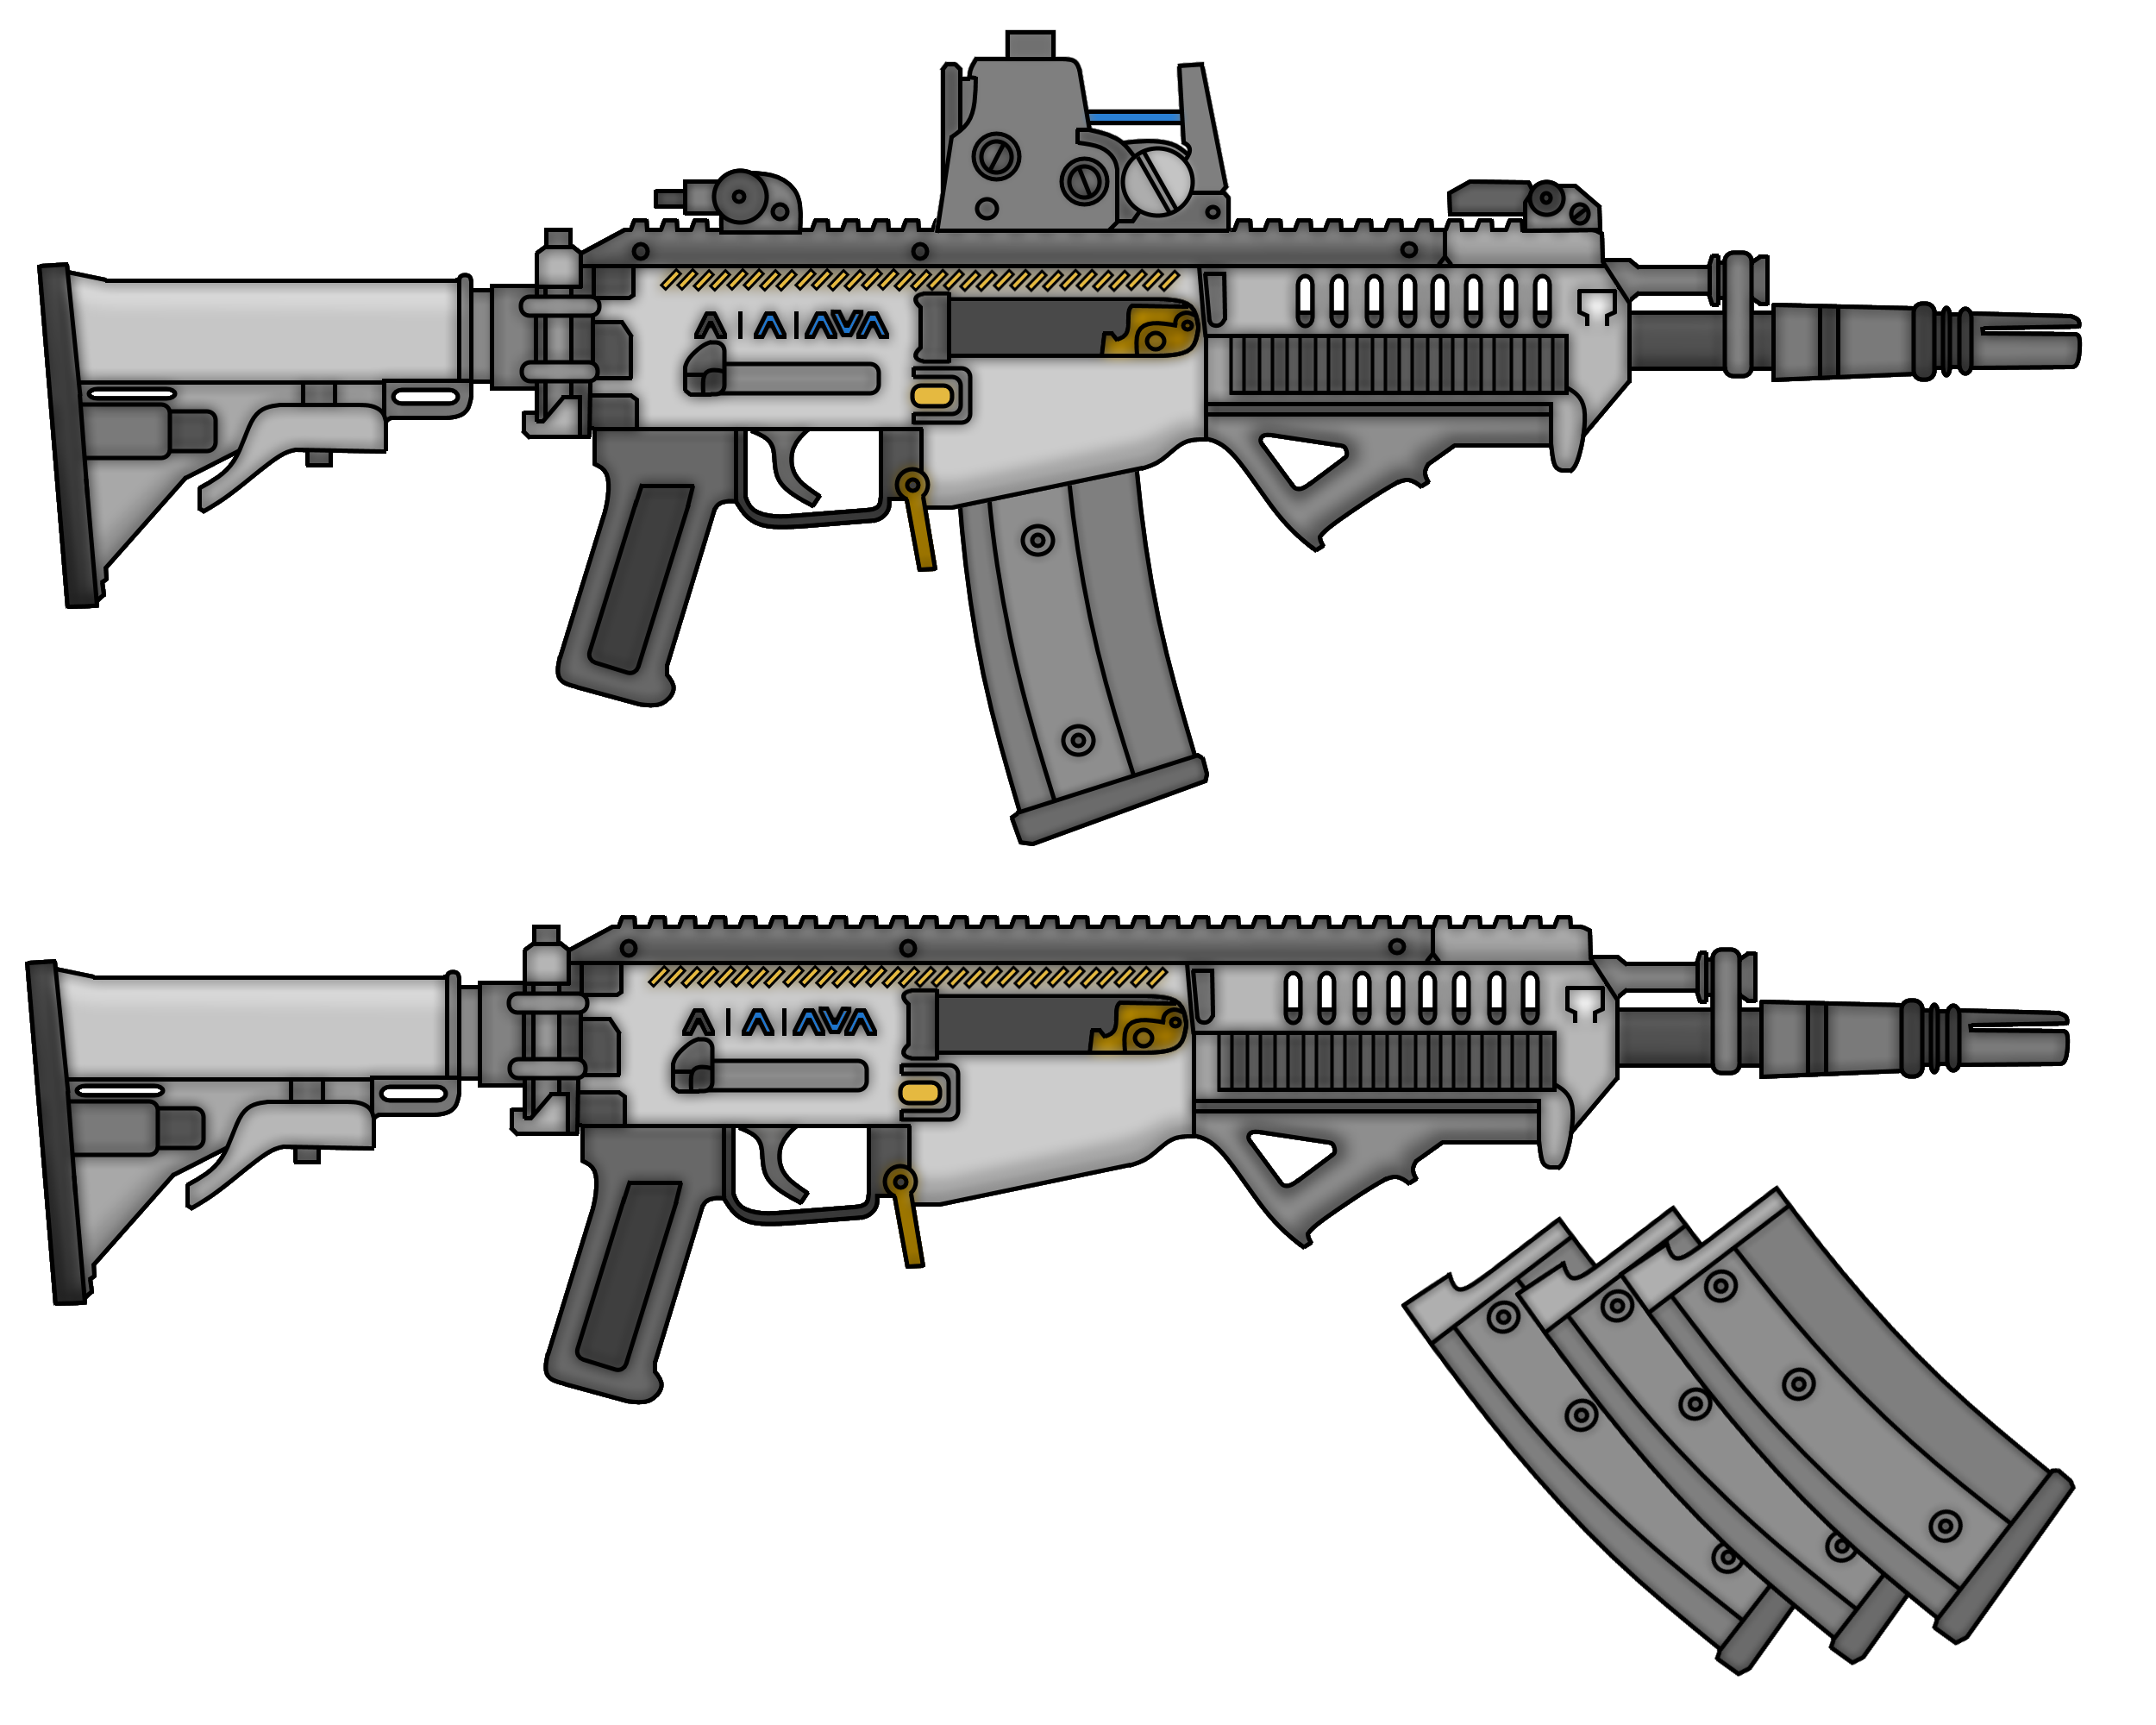 ugtf l603 combat rifle by thefrozenwaffle on deviantart